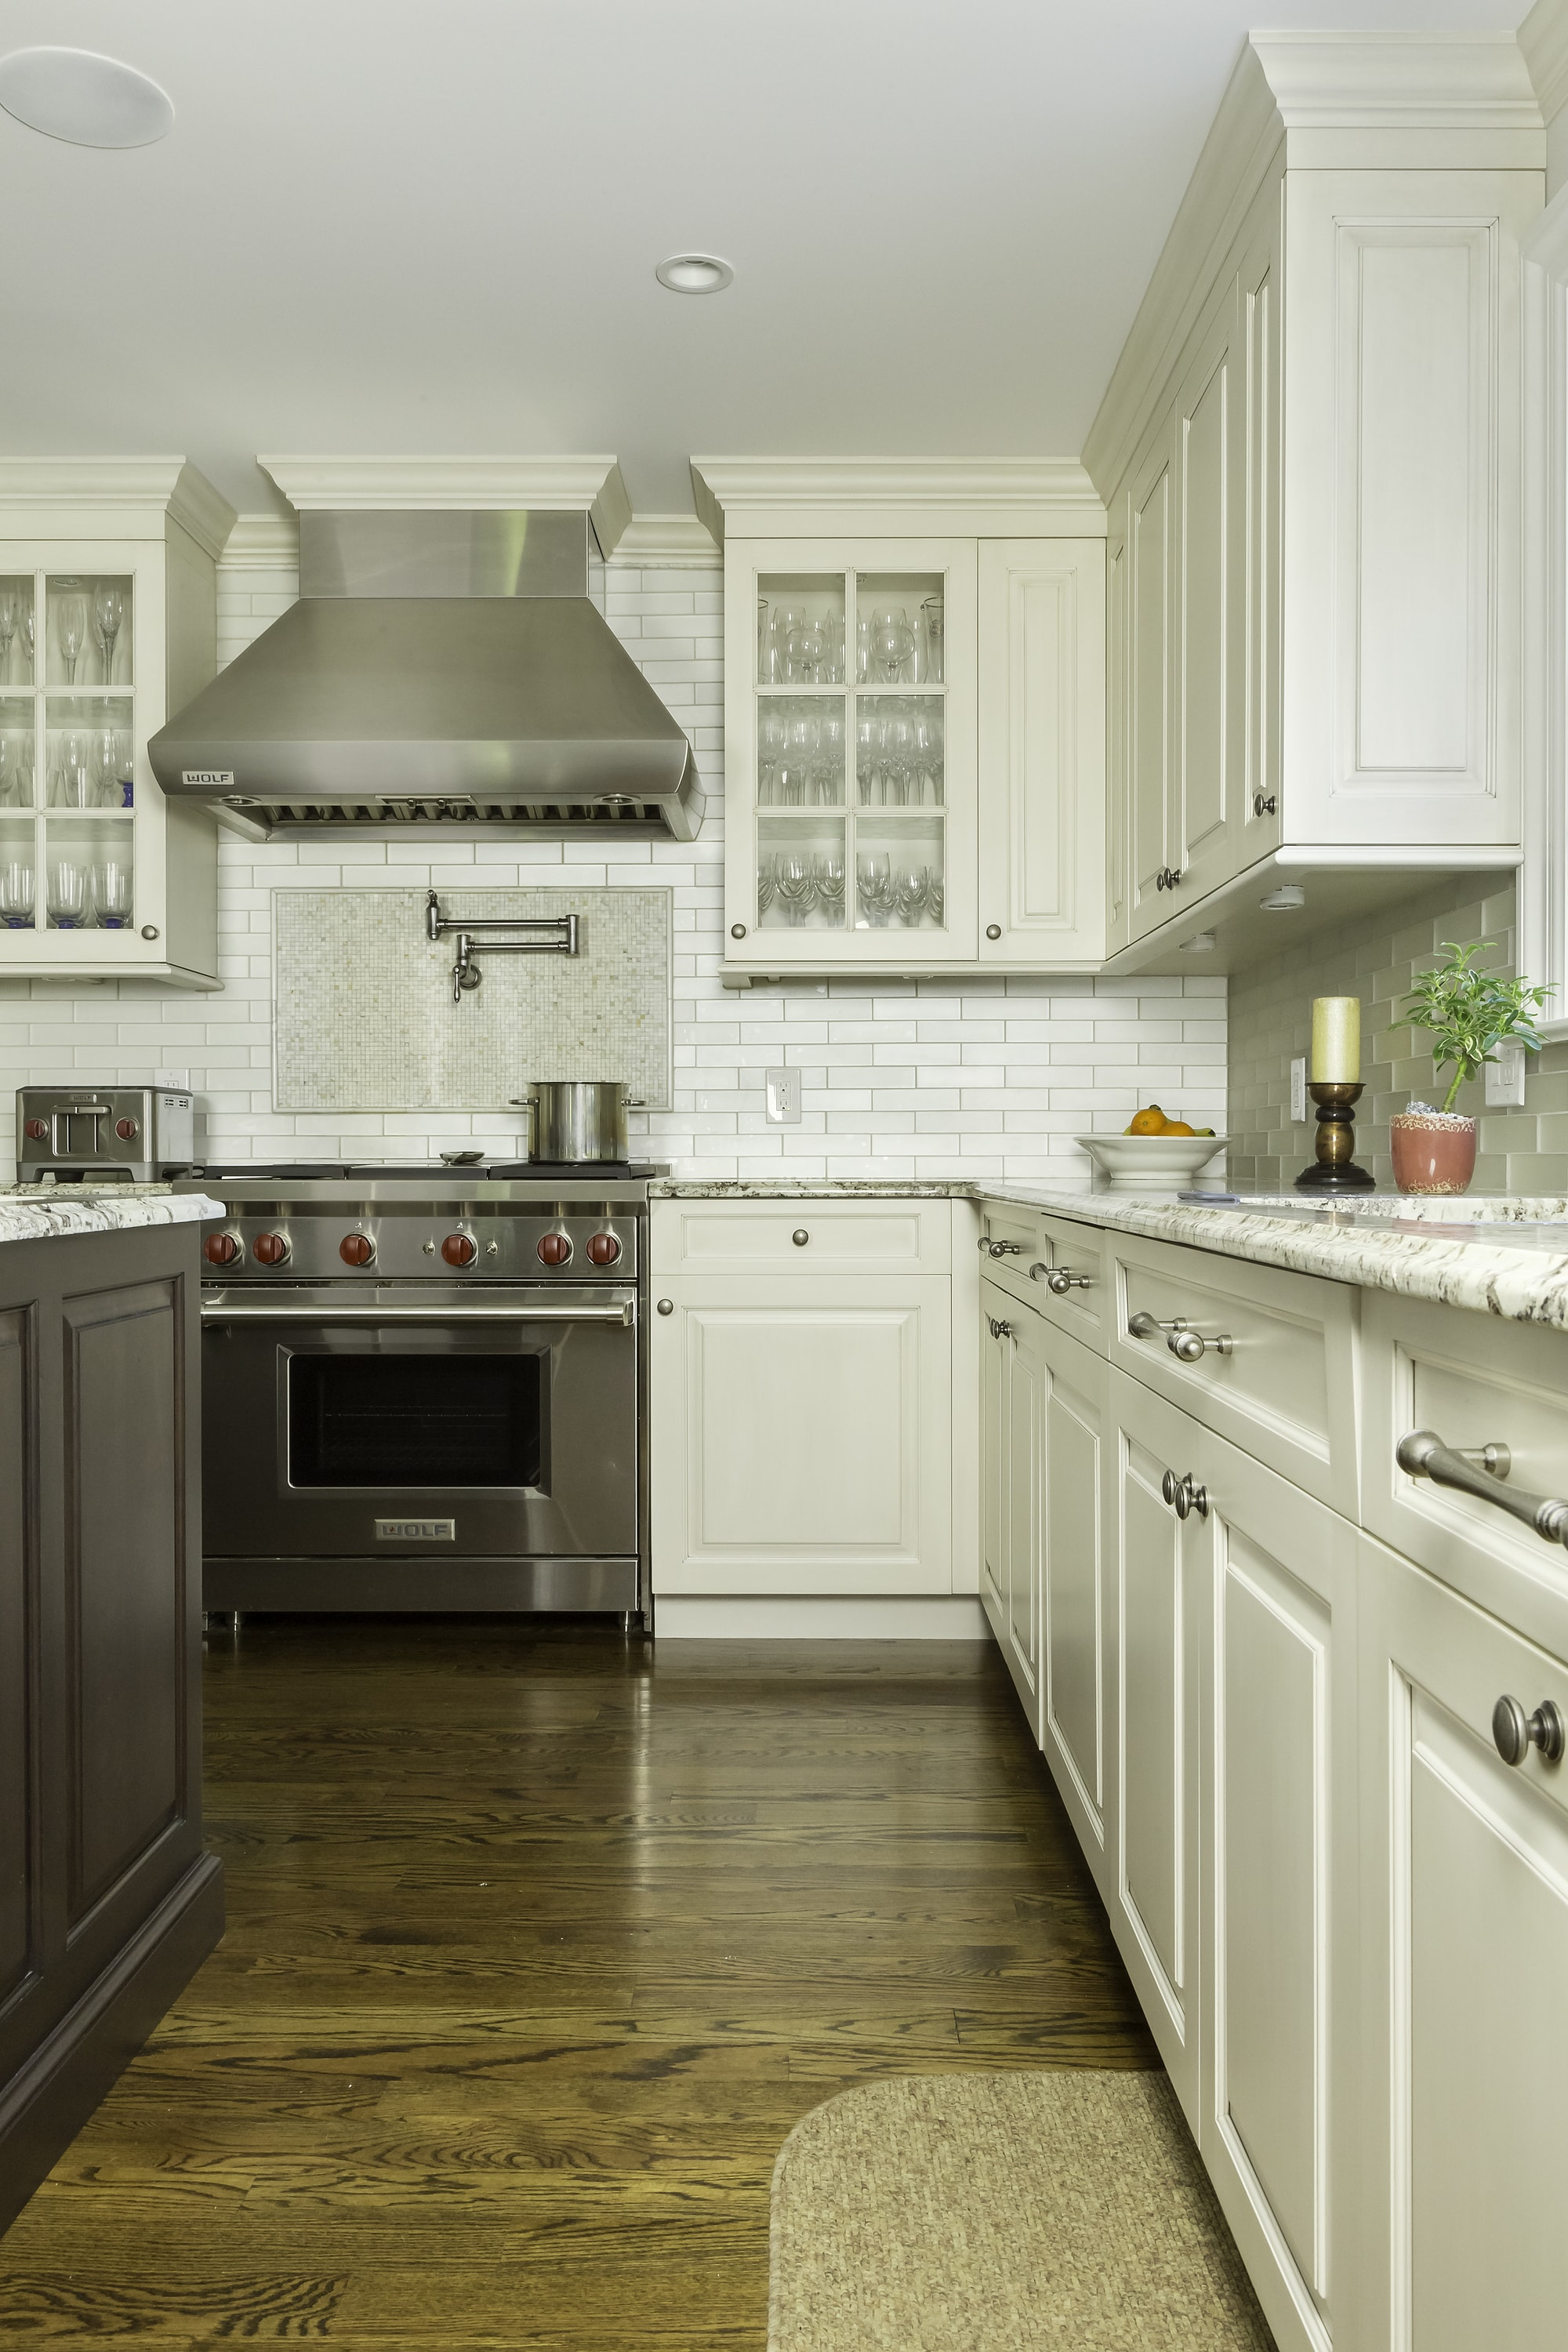 Traditional style kitchen with upper cabinets and drawers